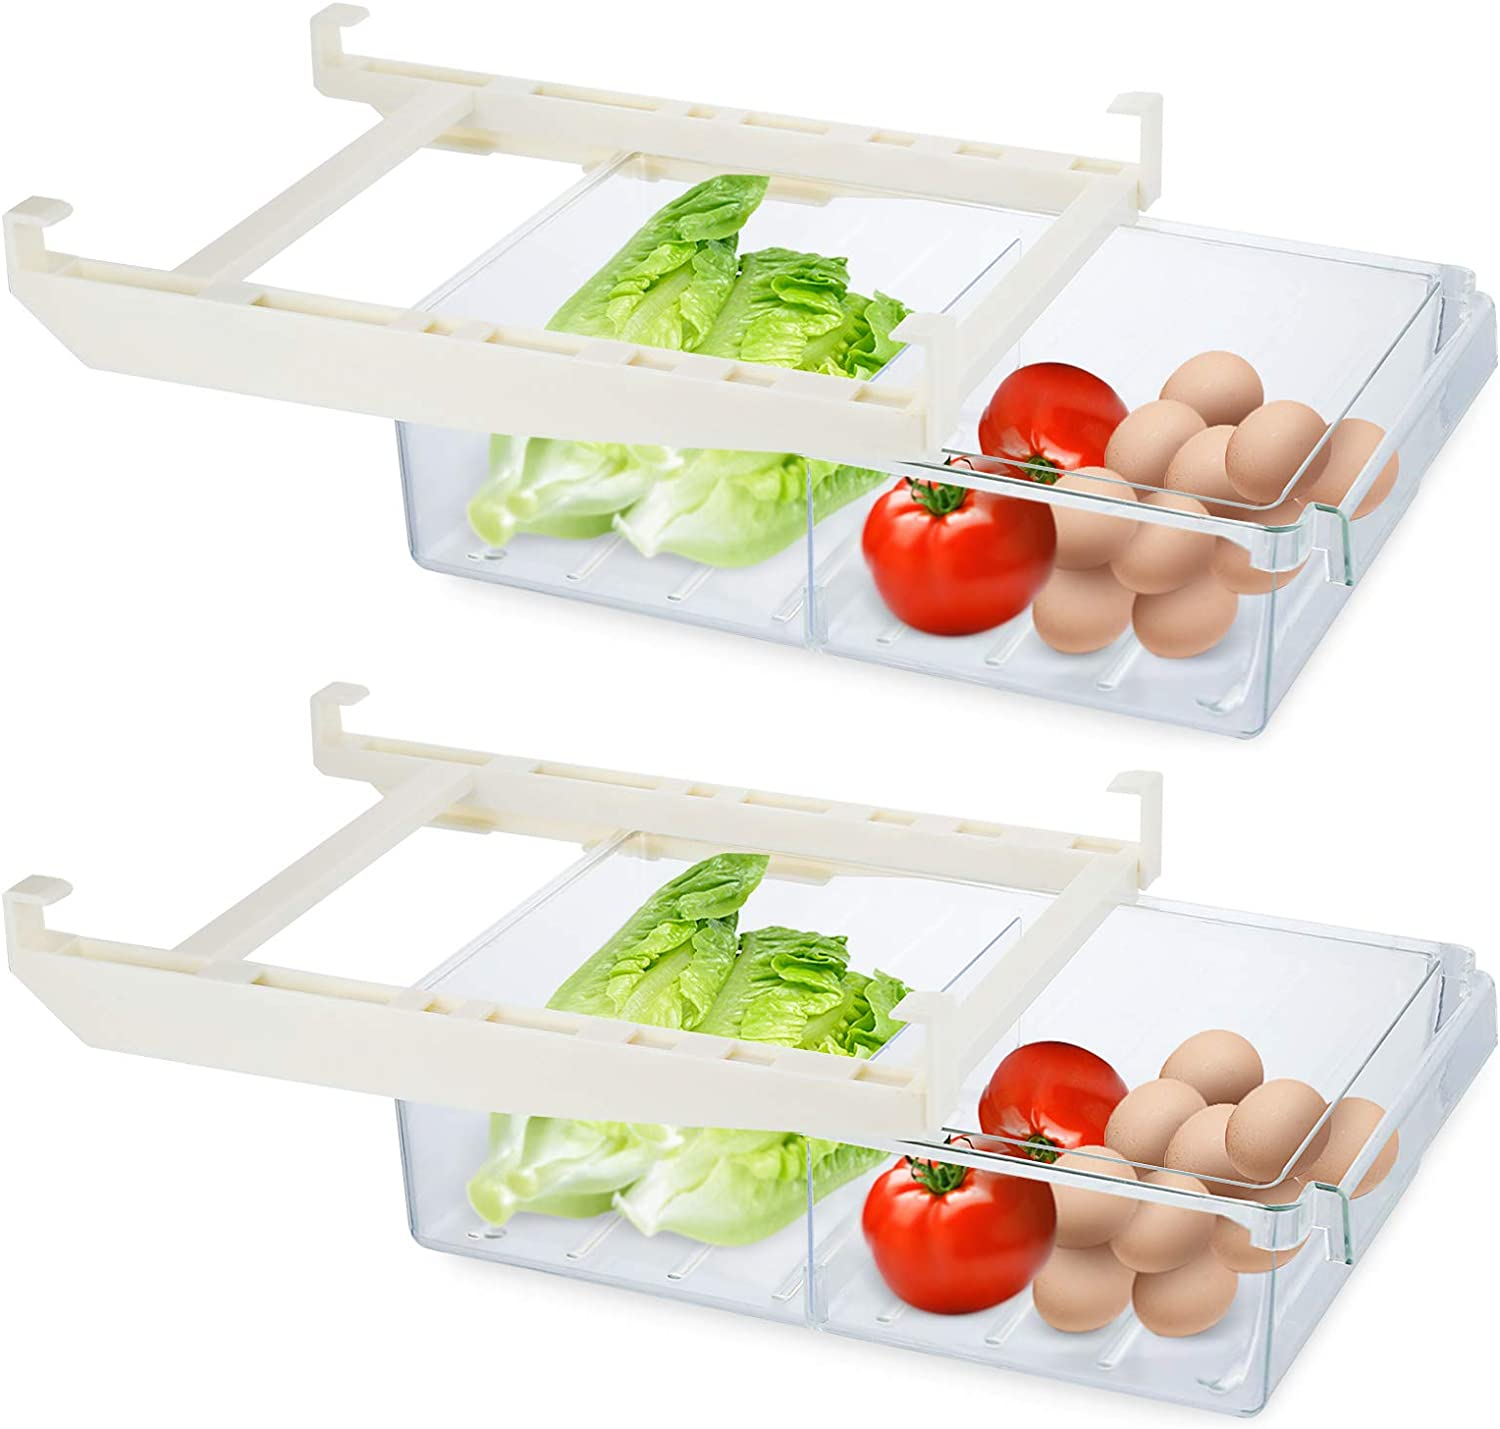 Whiidoom 2 Pack Refrigerator Organizer Bins, Fridge Drawer Organizer Pull Out Refrigerator Storage Box with Partition for Food Fresh-Keeping & Classified